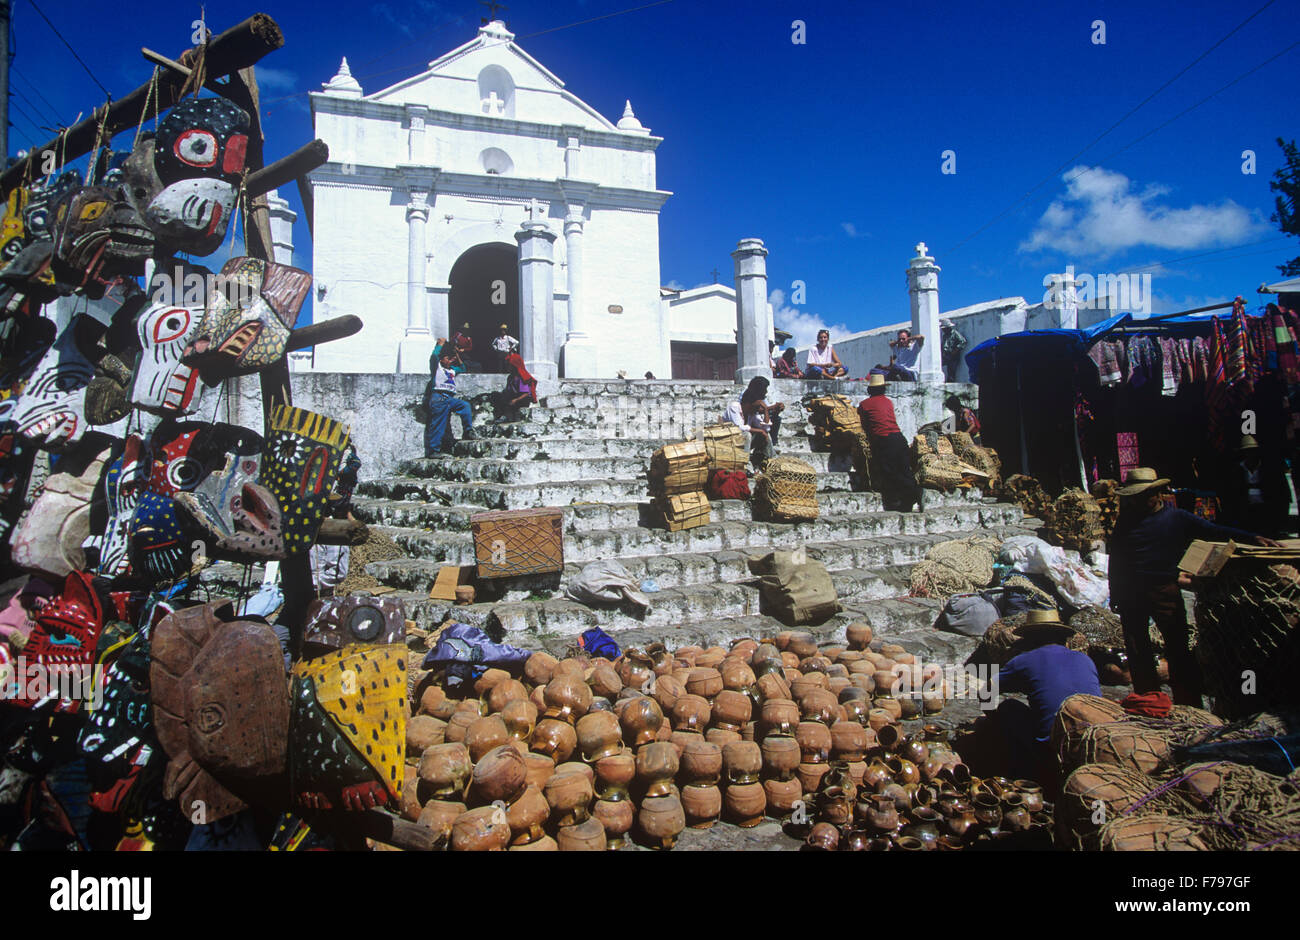 Market day on the plaza in front of El Calvario Chapel, Chichicastenango, Guatemala. - Stock Image